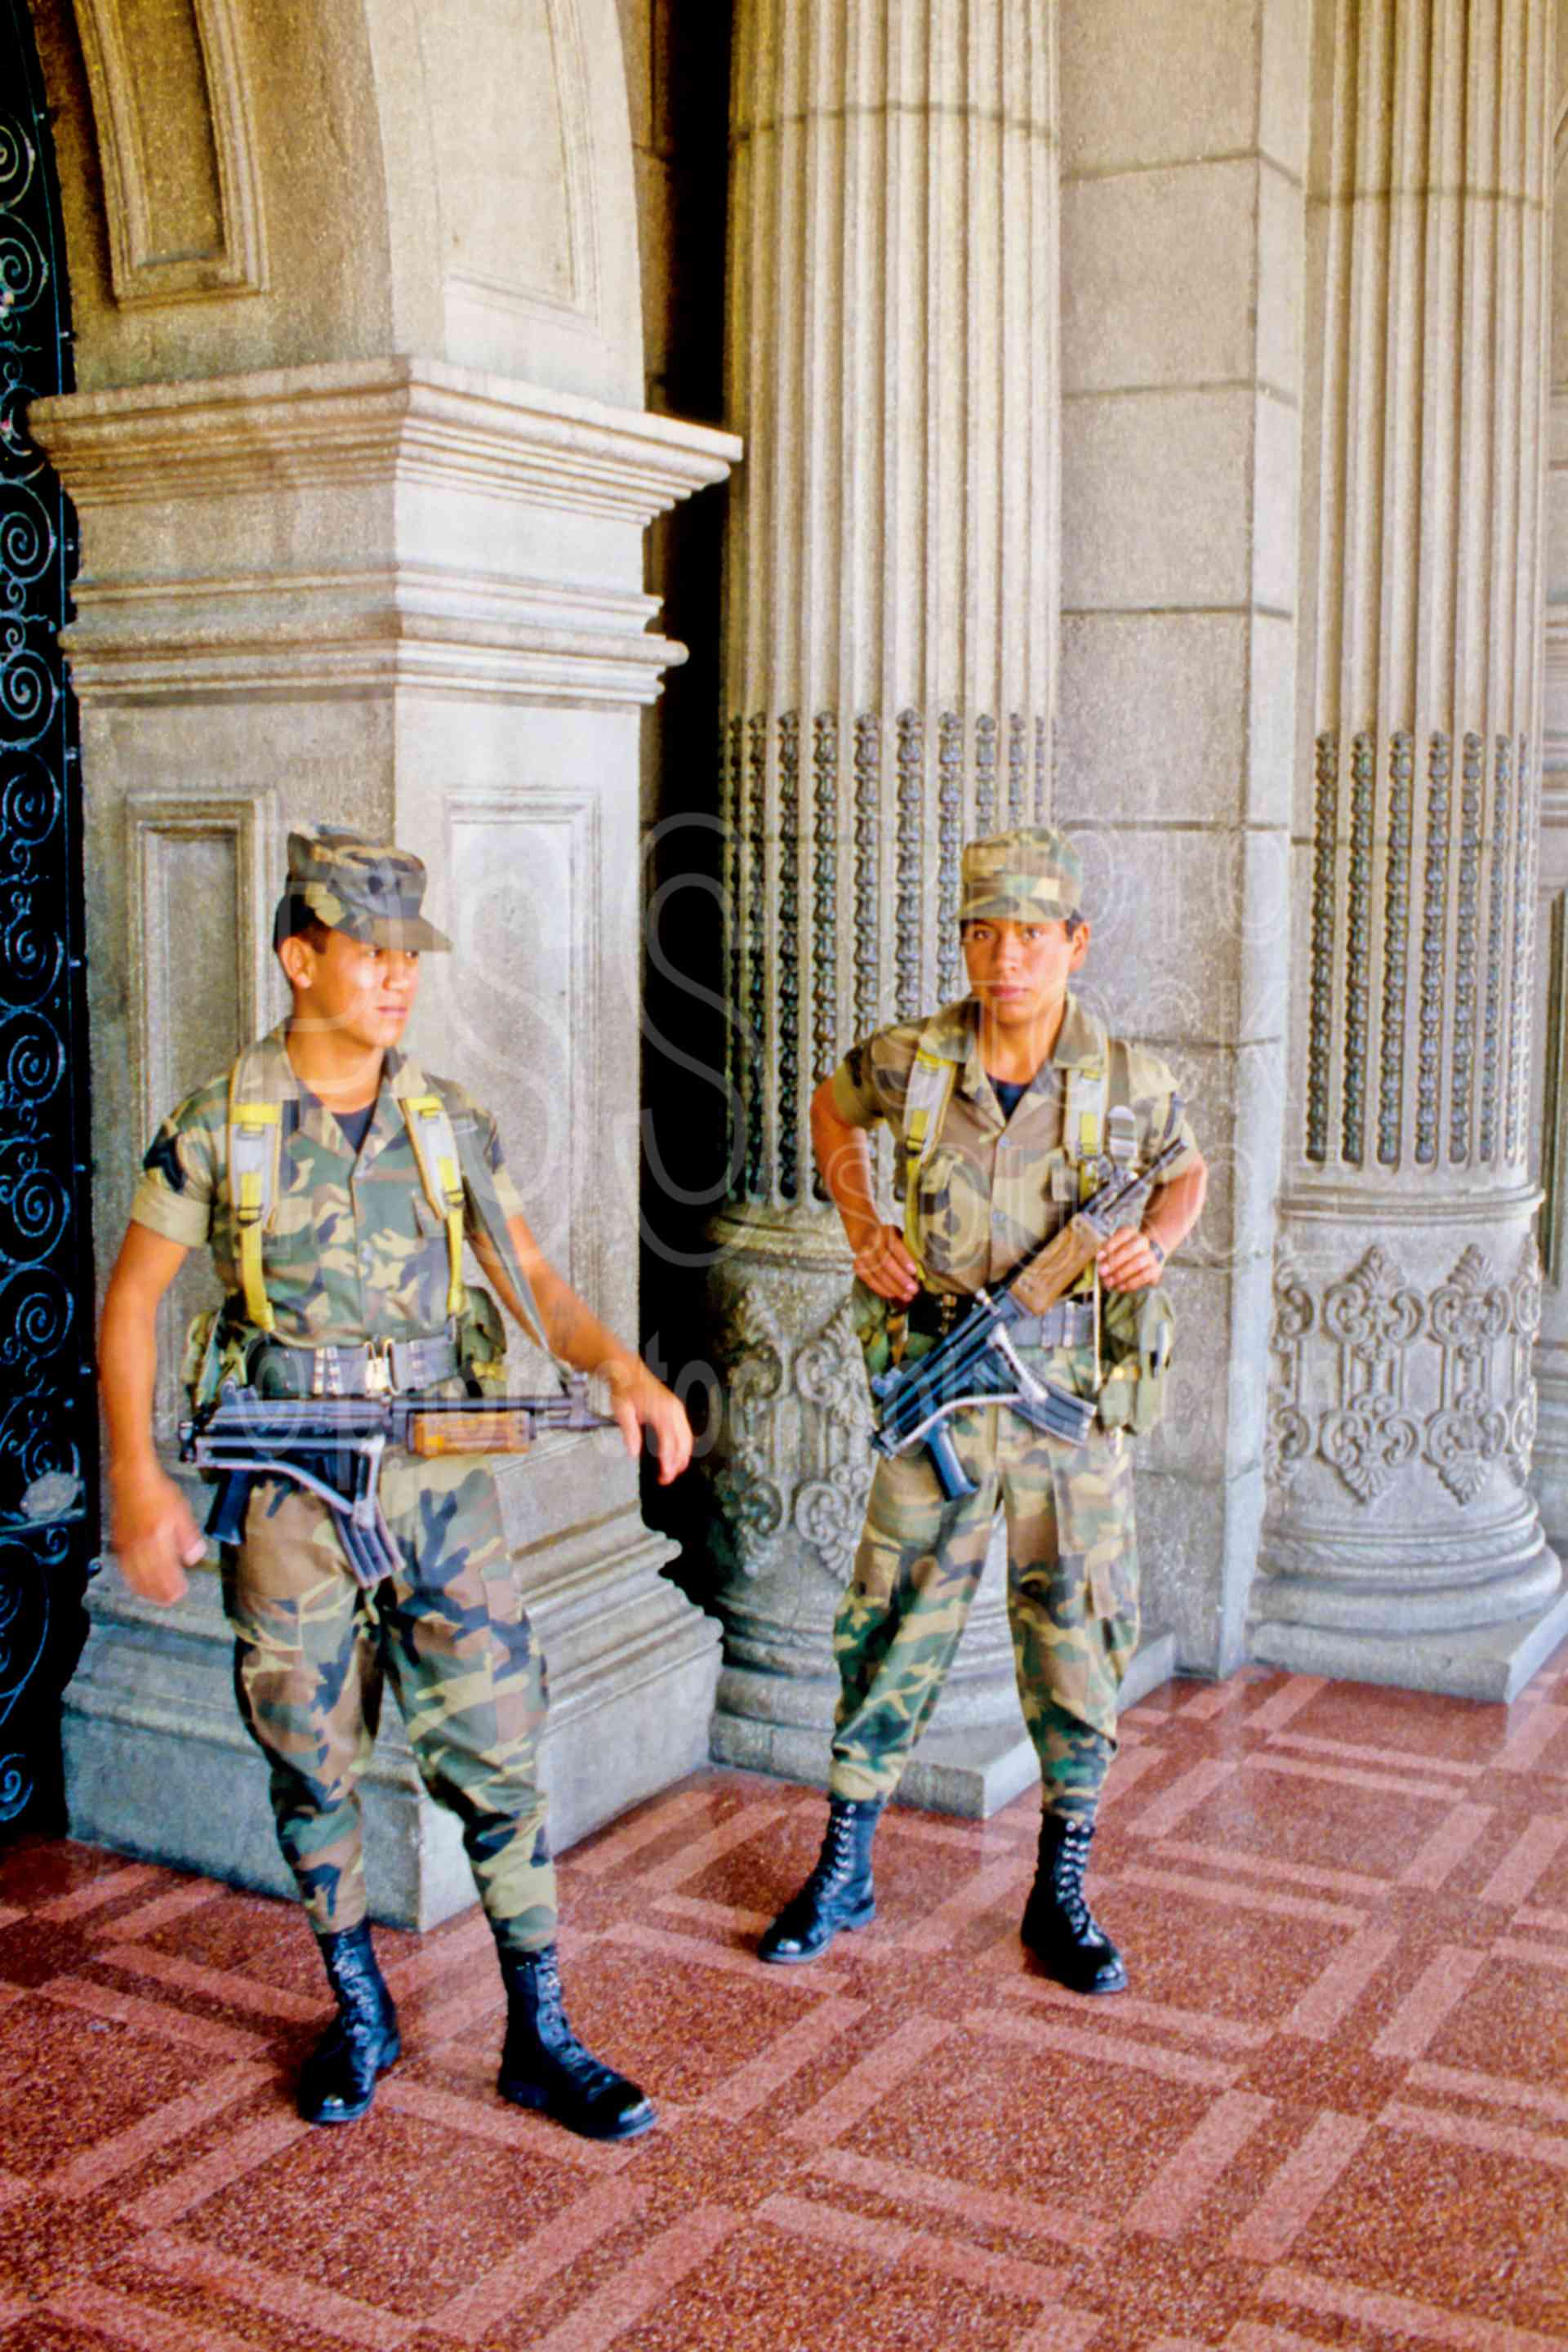 Armed Guards,national palace,guns,military,uniform